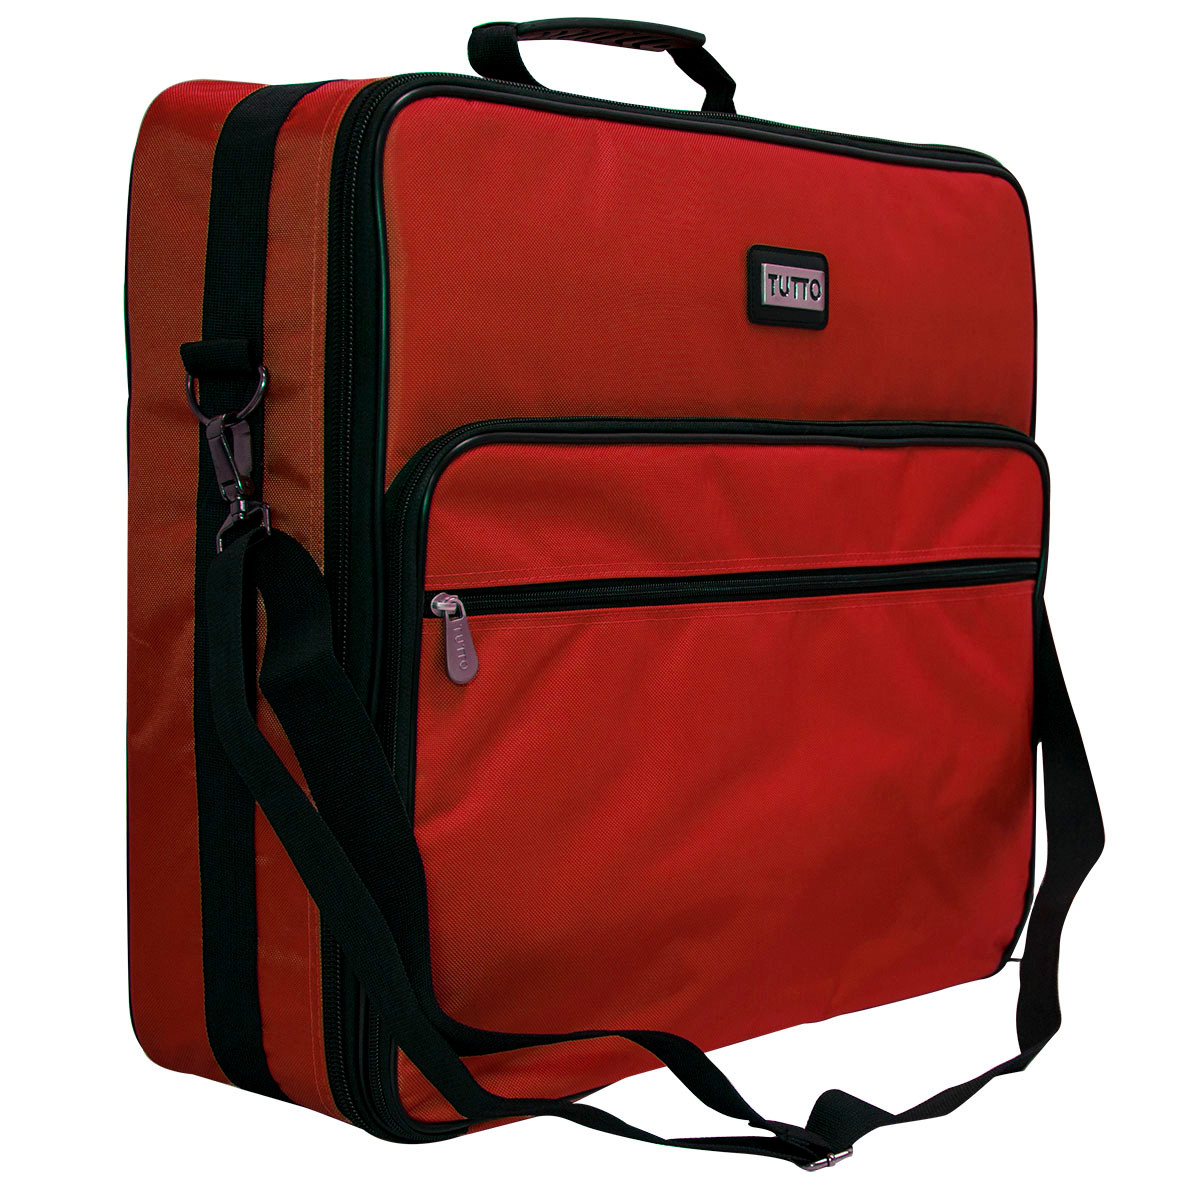 Tutto quot red embroidery project bag sew vac direct